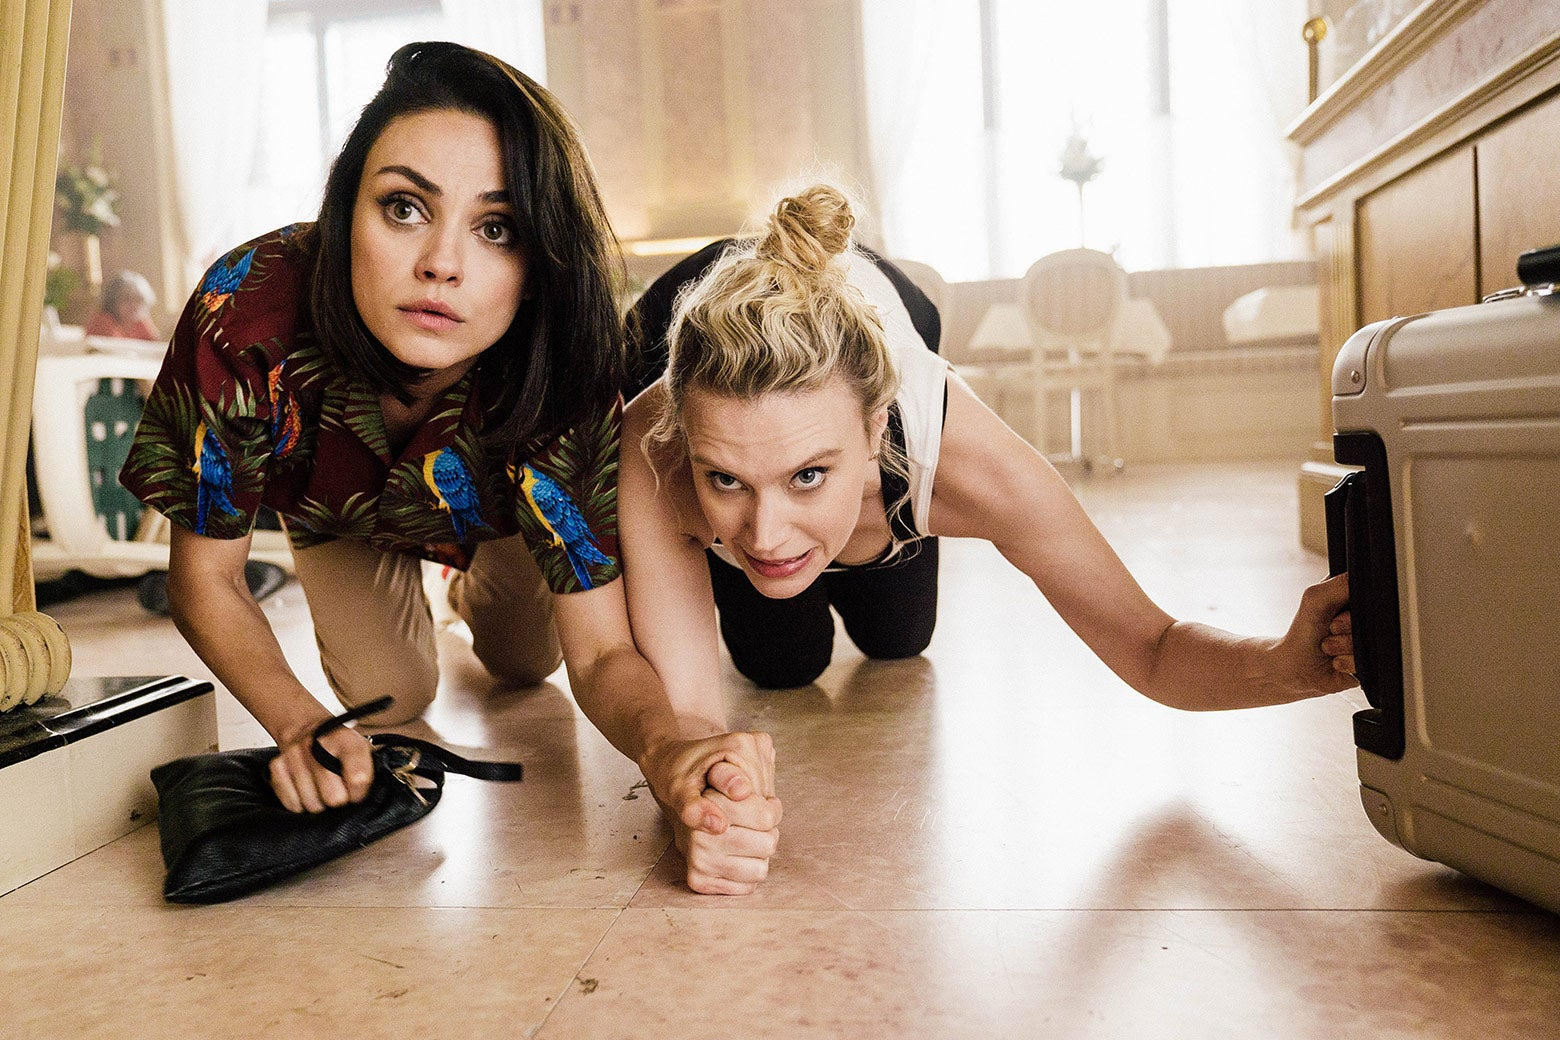 Mila Kunis and Kate McKinnon crawl on the floor in a still from the film.